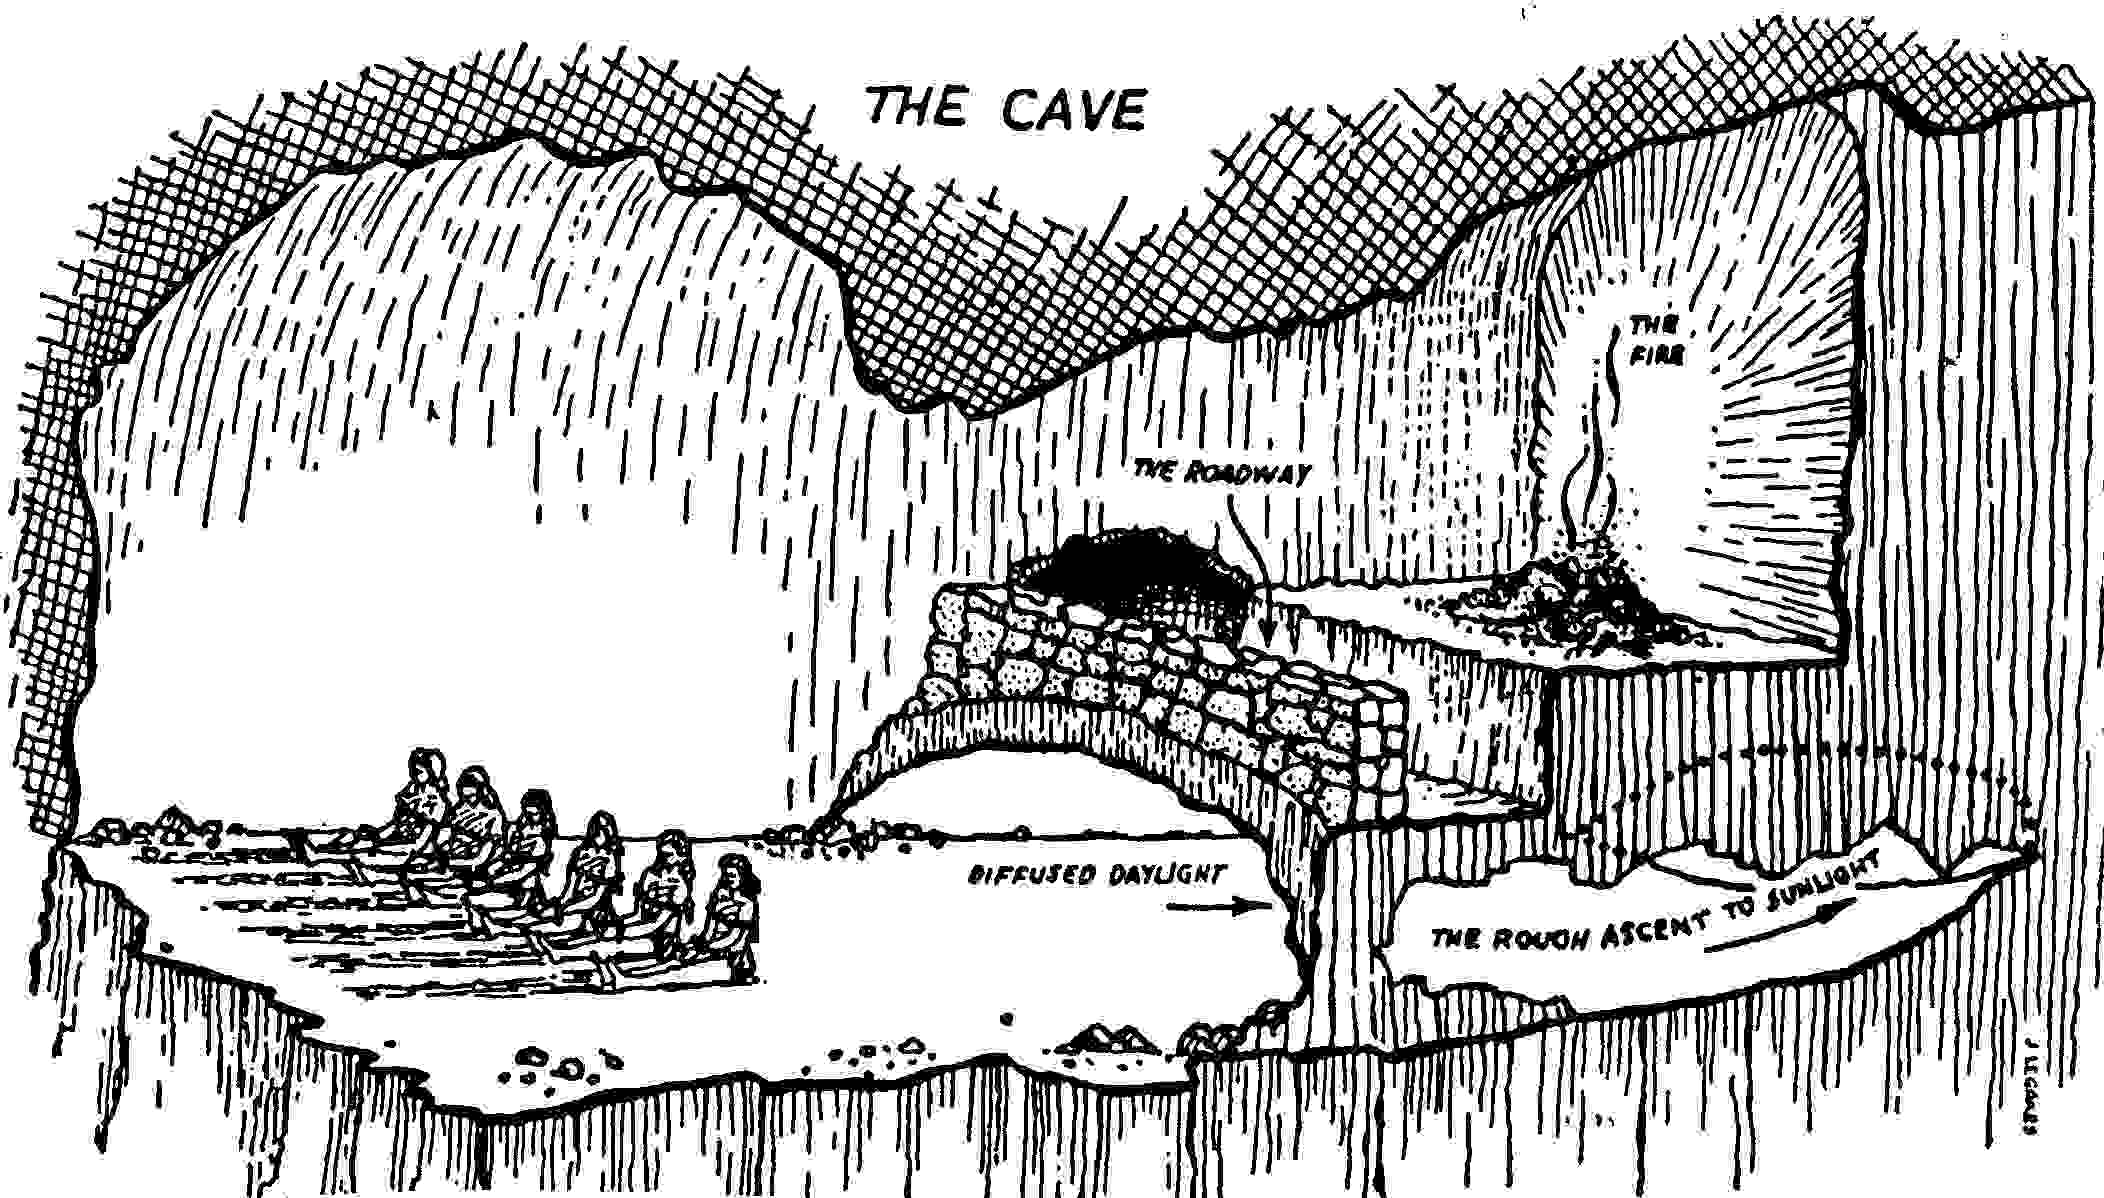 home plato s republic libguides at new st andrews college the myth of the cave